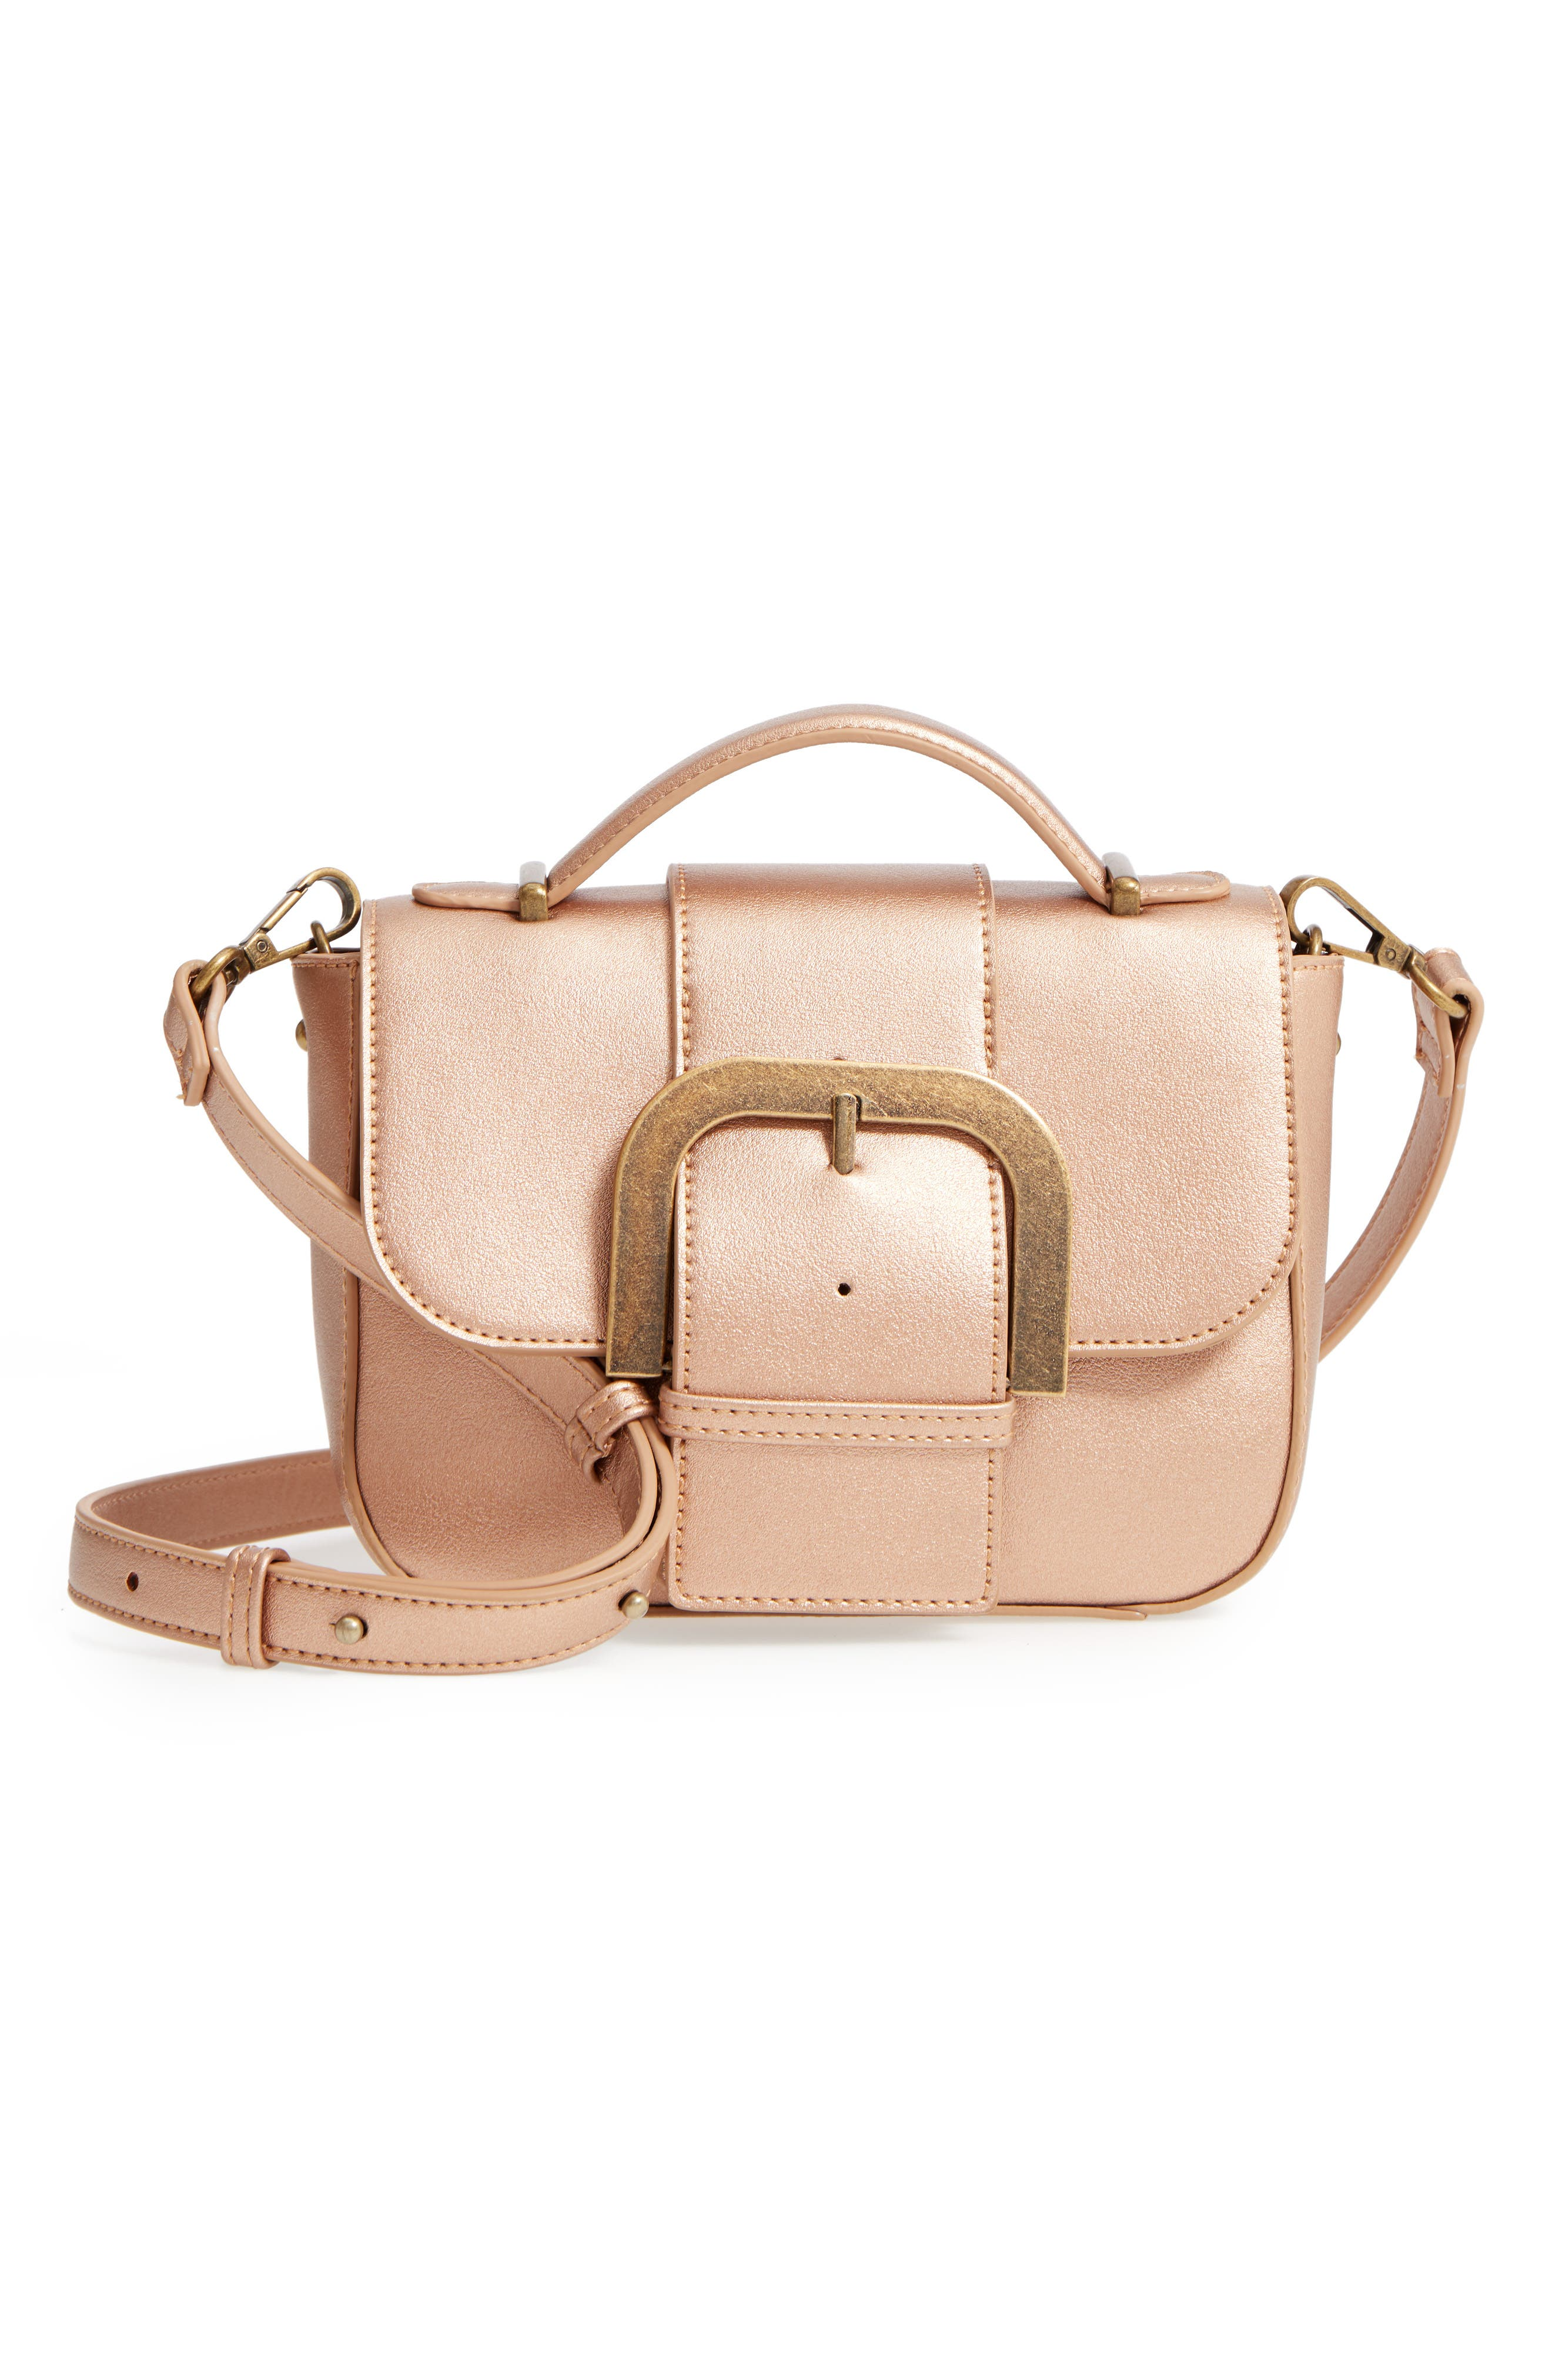 MALIBU SKYE, Oversize Buckle Top Handle Bag, Main thumbnail 1, color, ROSE GOLD